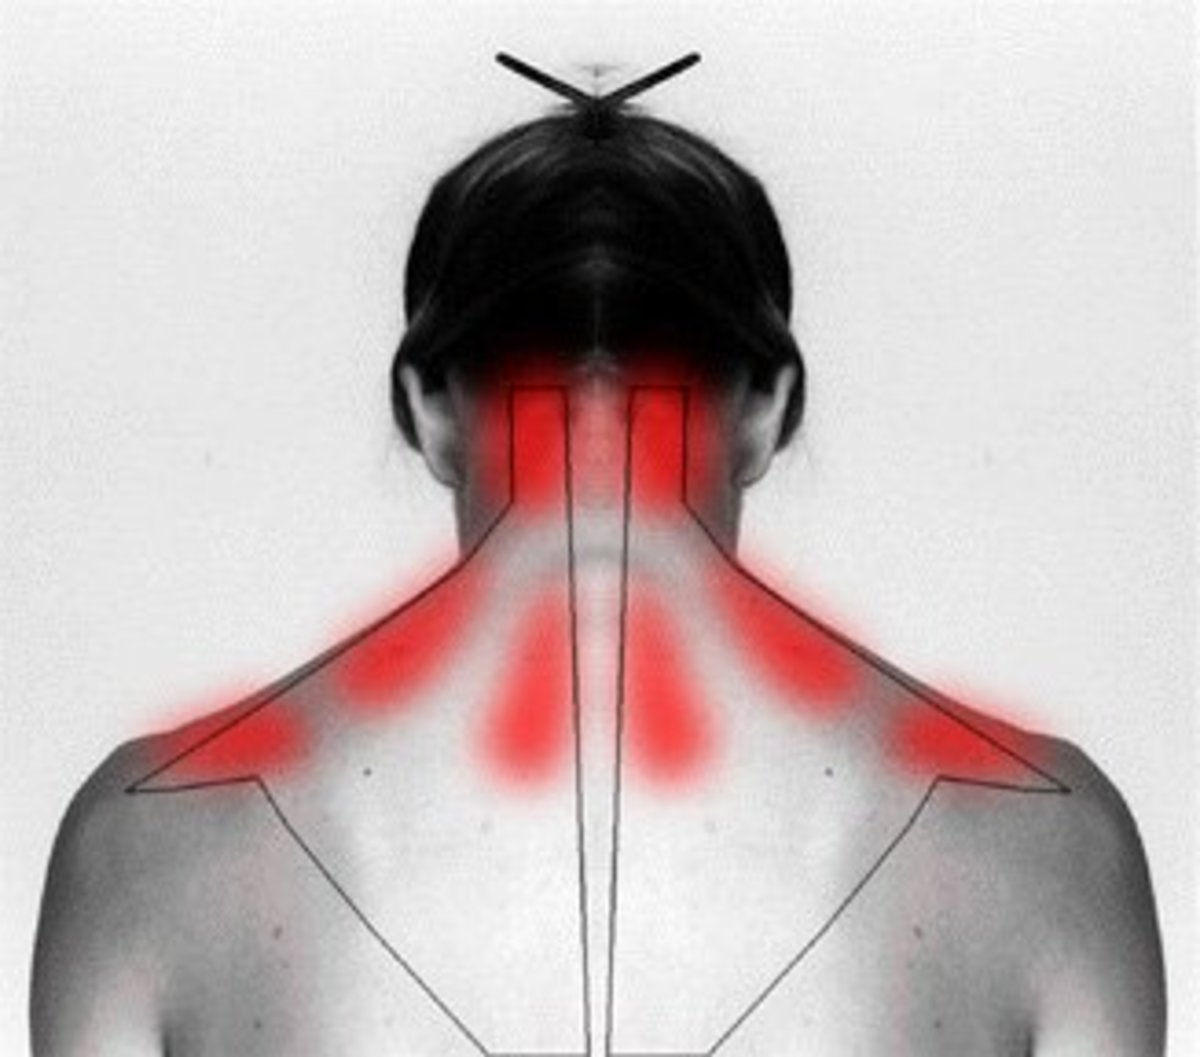 Learn why it hurts and how to self-adjust your stiff neck and shoulder  pain.